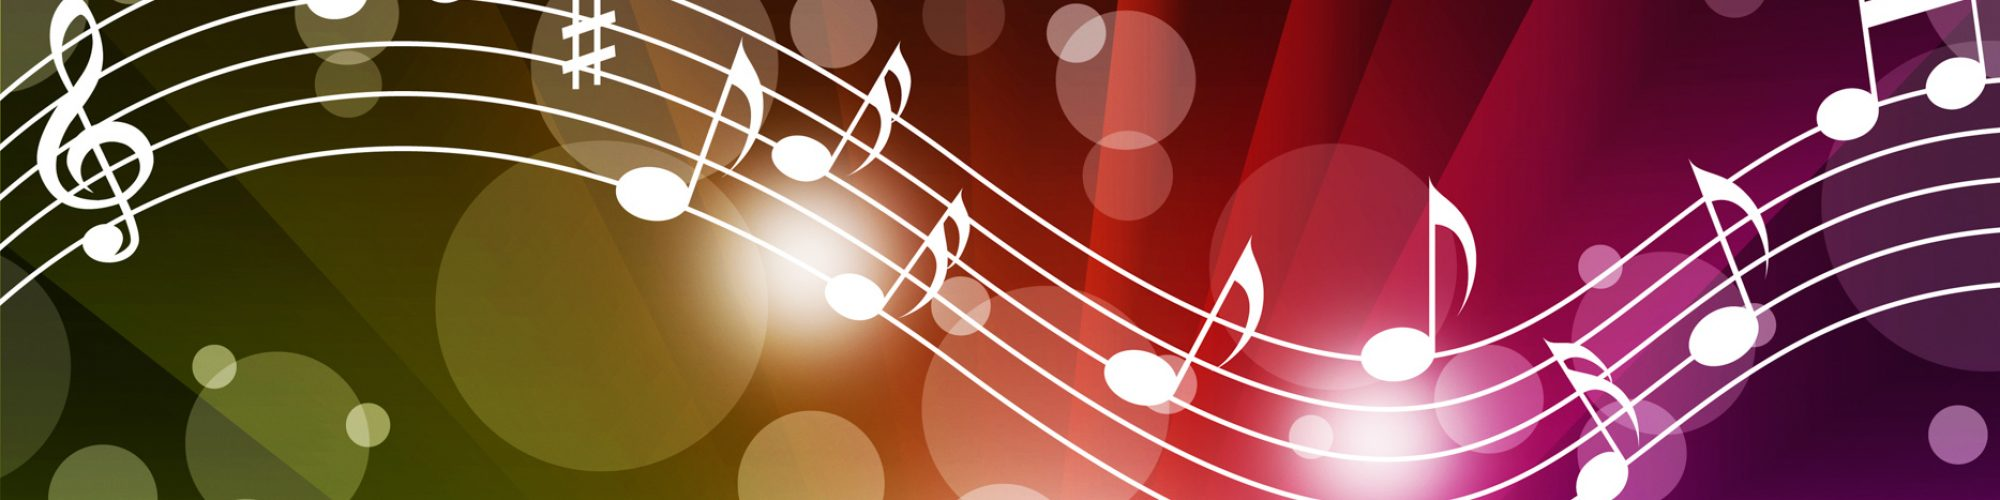 Music Background Meaning Singing Instruments And Notes